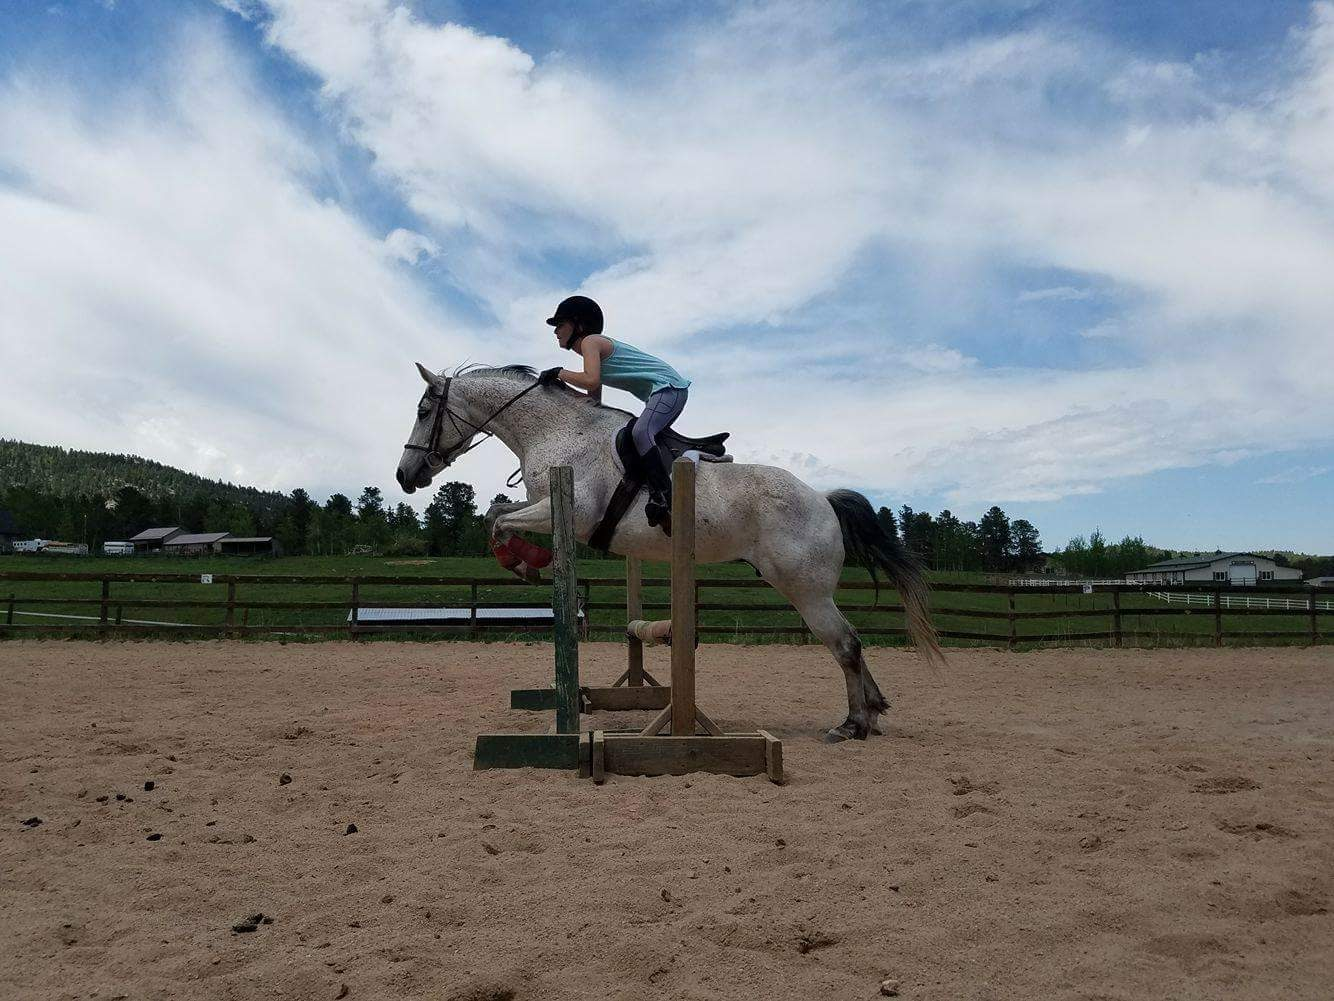 One of Brittnee's students practicing jumping